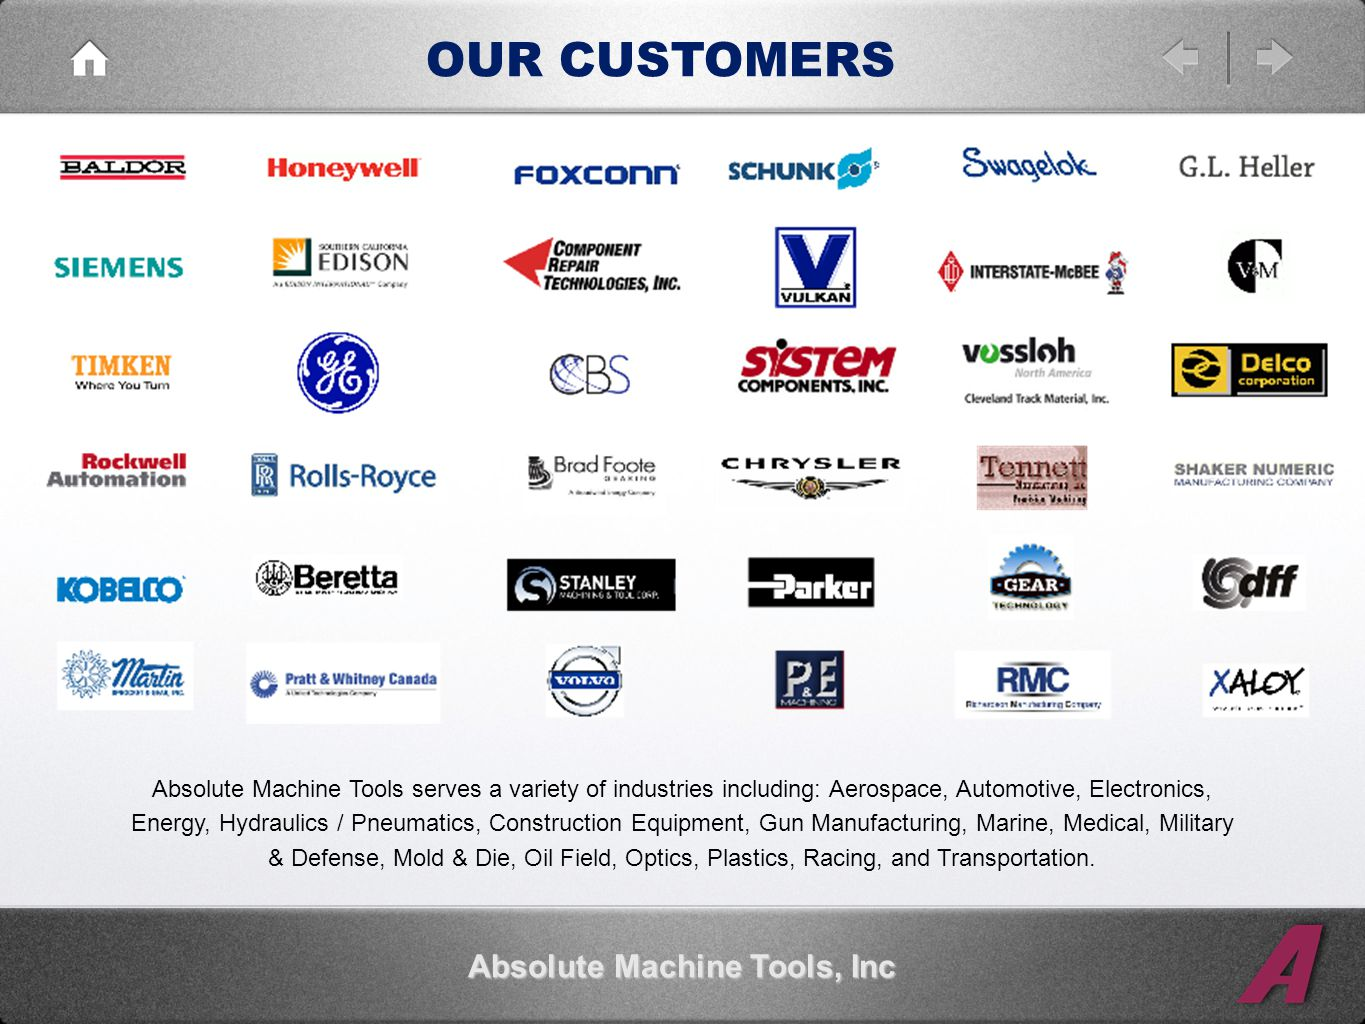 OUR CUSTOMERS Absolute Machine Tools, Inc Absolute Machine Tools serves a variety of industries including: Aerospace, Automotive, Electronics, Energy, Hydraulics / Pneumatics, Construction Equipment, Gun Manufacturing, Marine, Medical, Military & Defense, Mold & Die, Oil Field, Optics, Plastics, Racing, and Transportation.